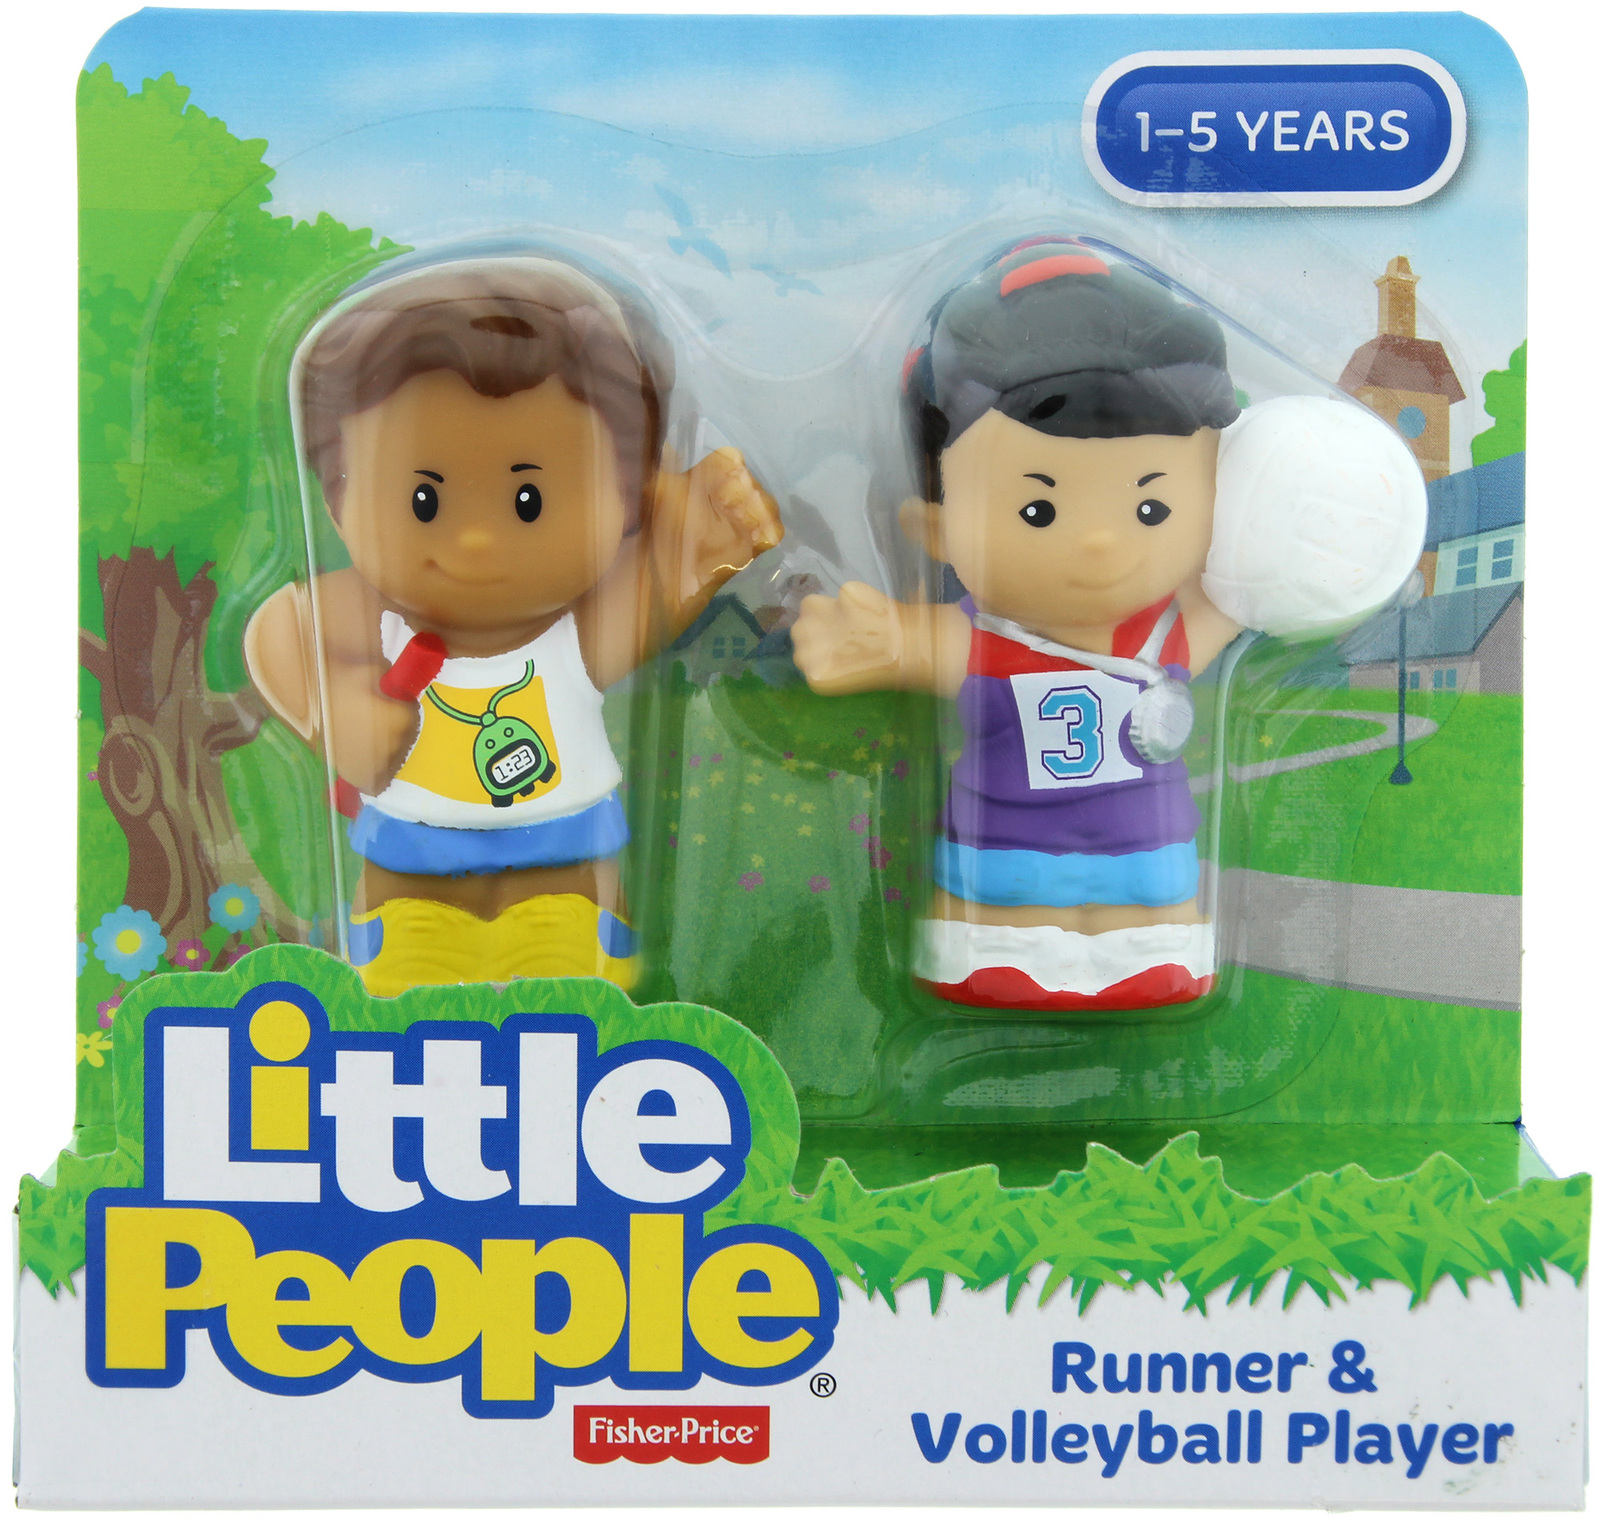 Fisher-Price: Little People - Runner & Volleyball Player image